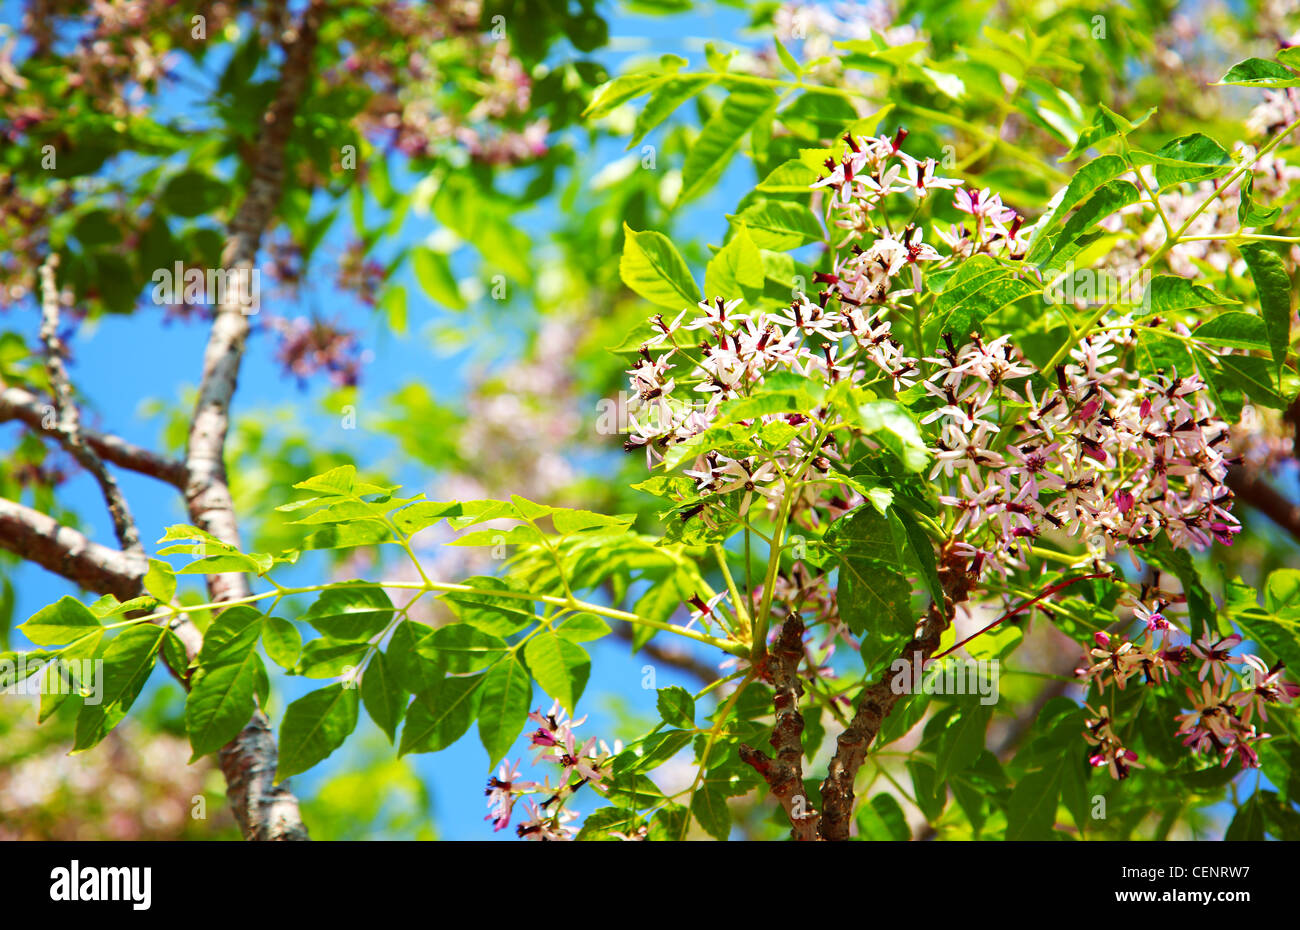 blue sky blossom tree branches stockfotos blue sky blossom tree branches bilder alamy. Black Bedroom Furniture Sets. Home Design Ideas